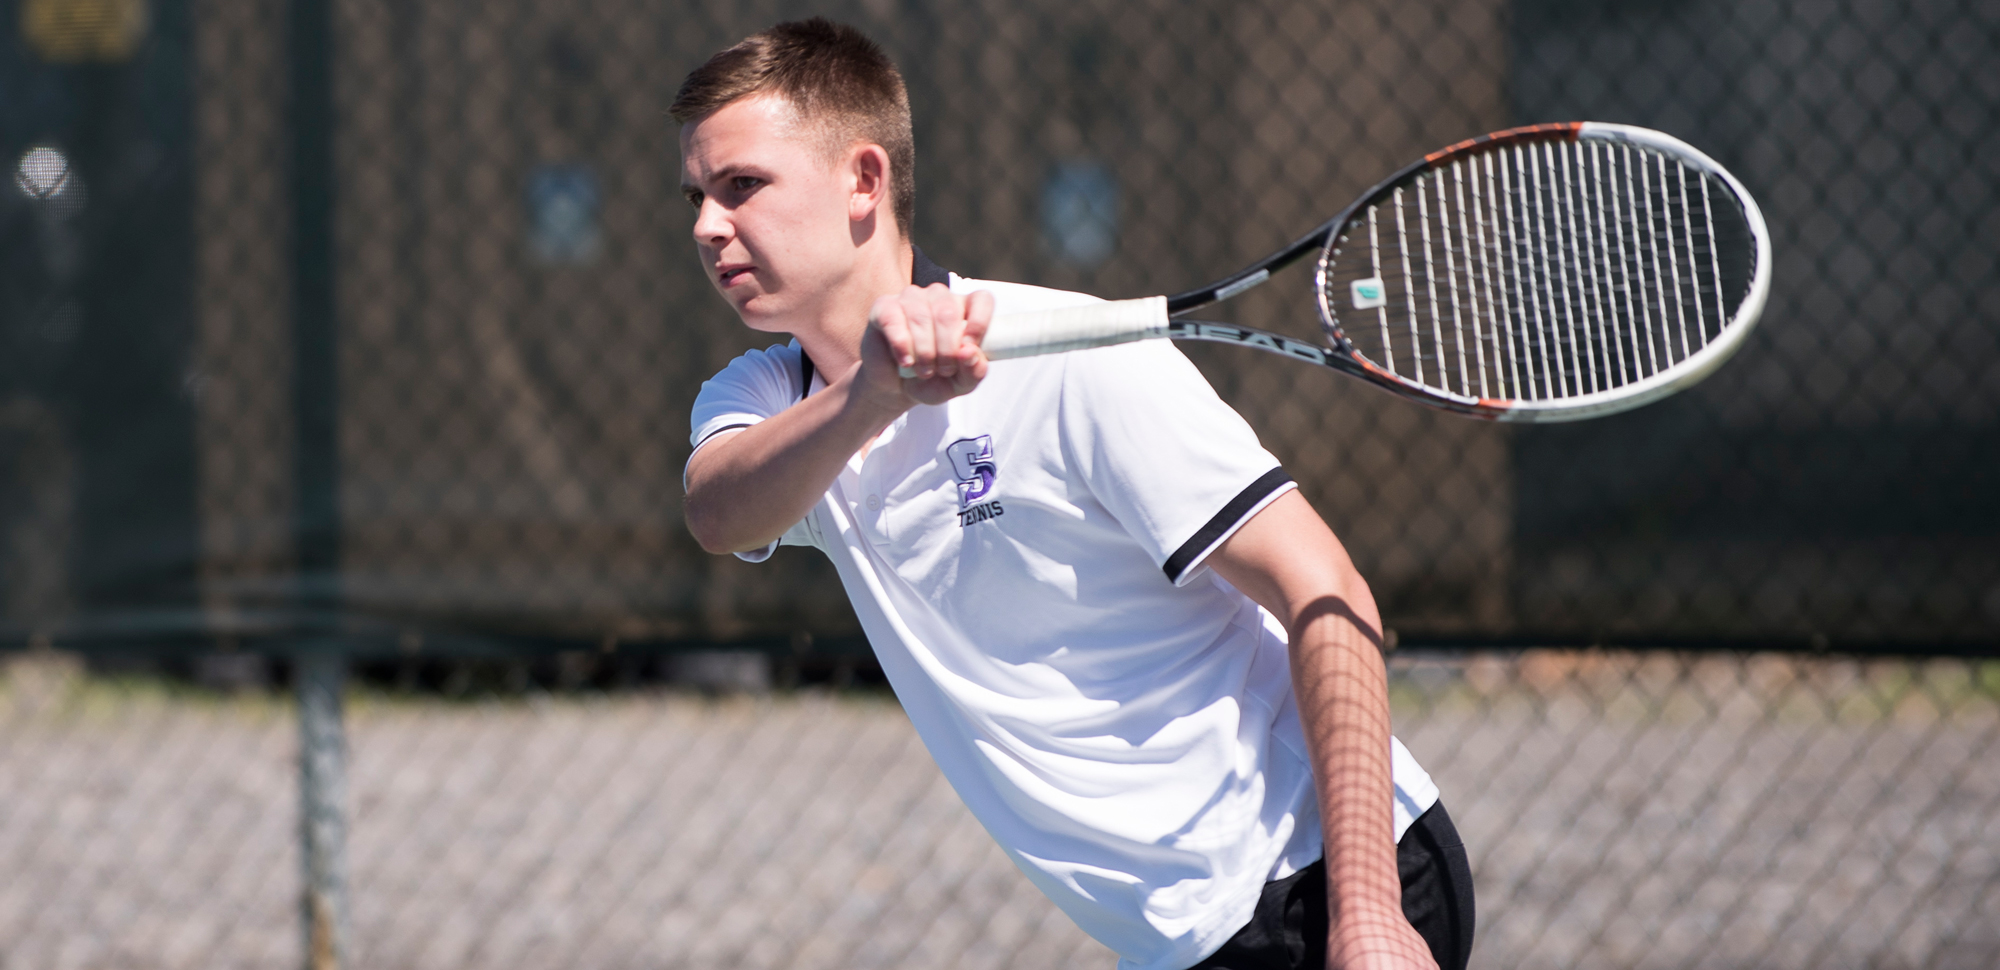 Junior Alexander Ochalski won at both doubles and singles, as the University of Scranton men's tennis team opened their 2017-18 season with a 9-0 win at Marywood on Monday.